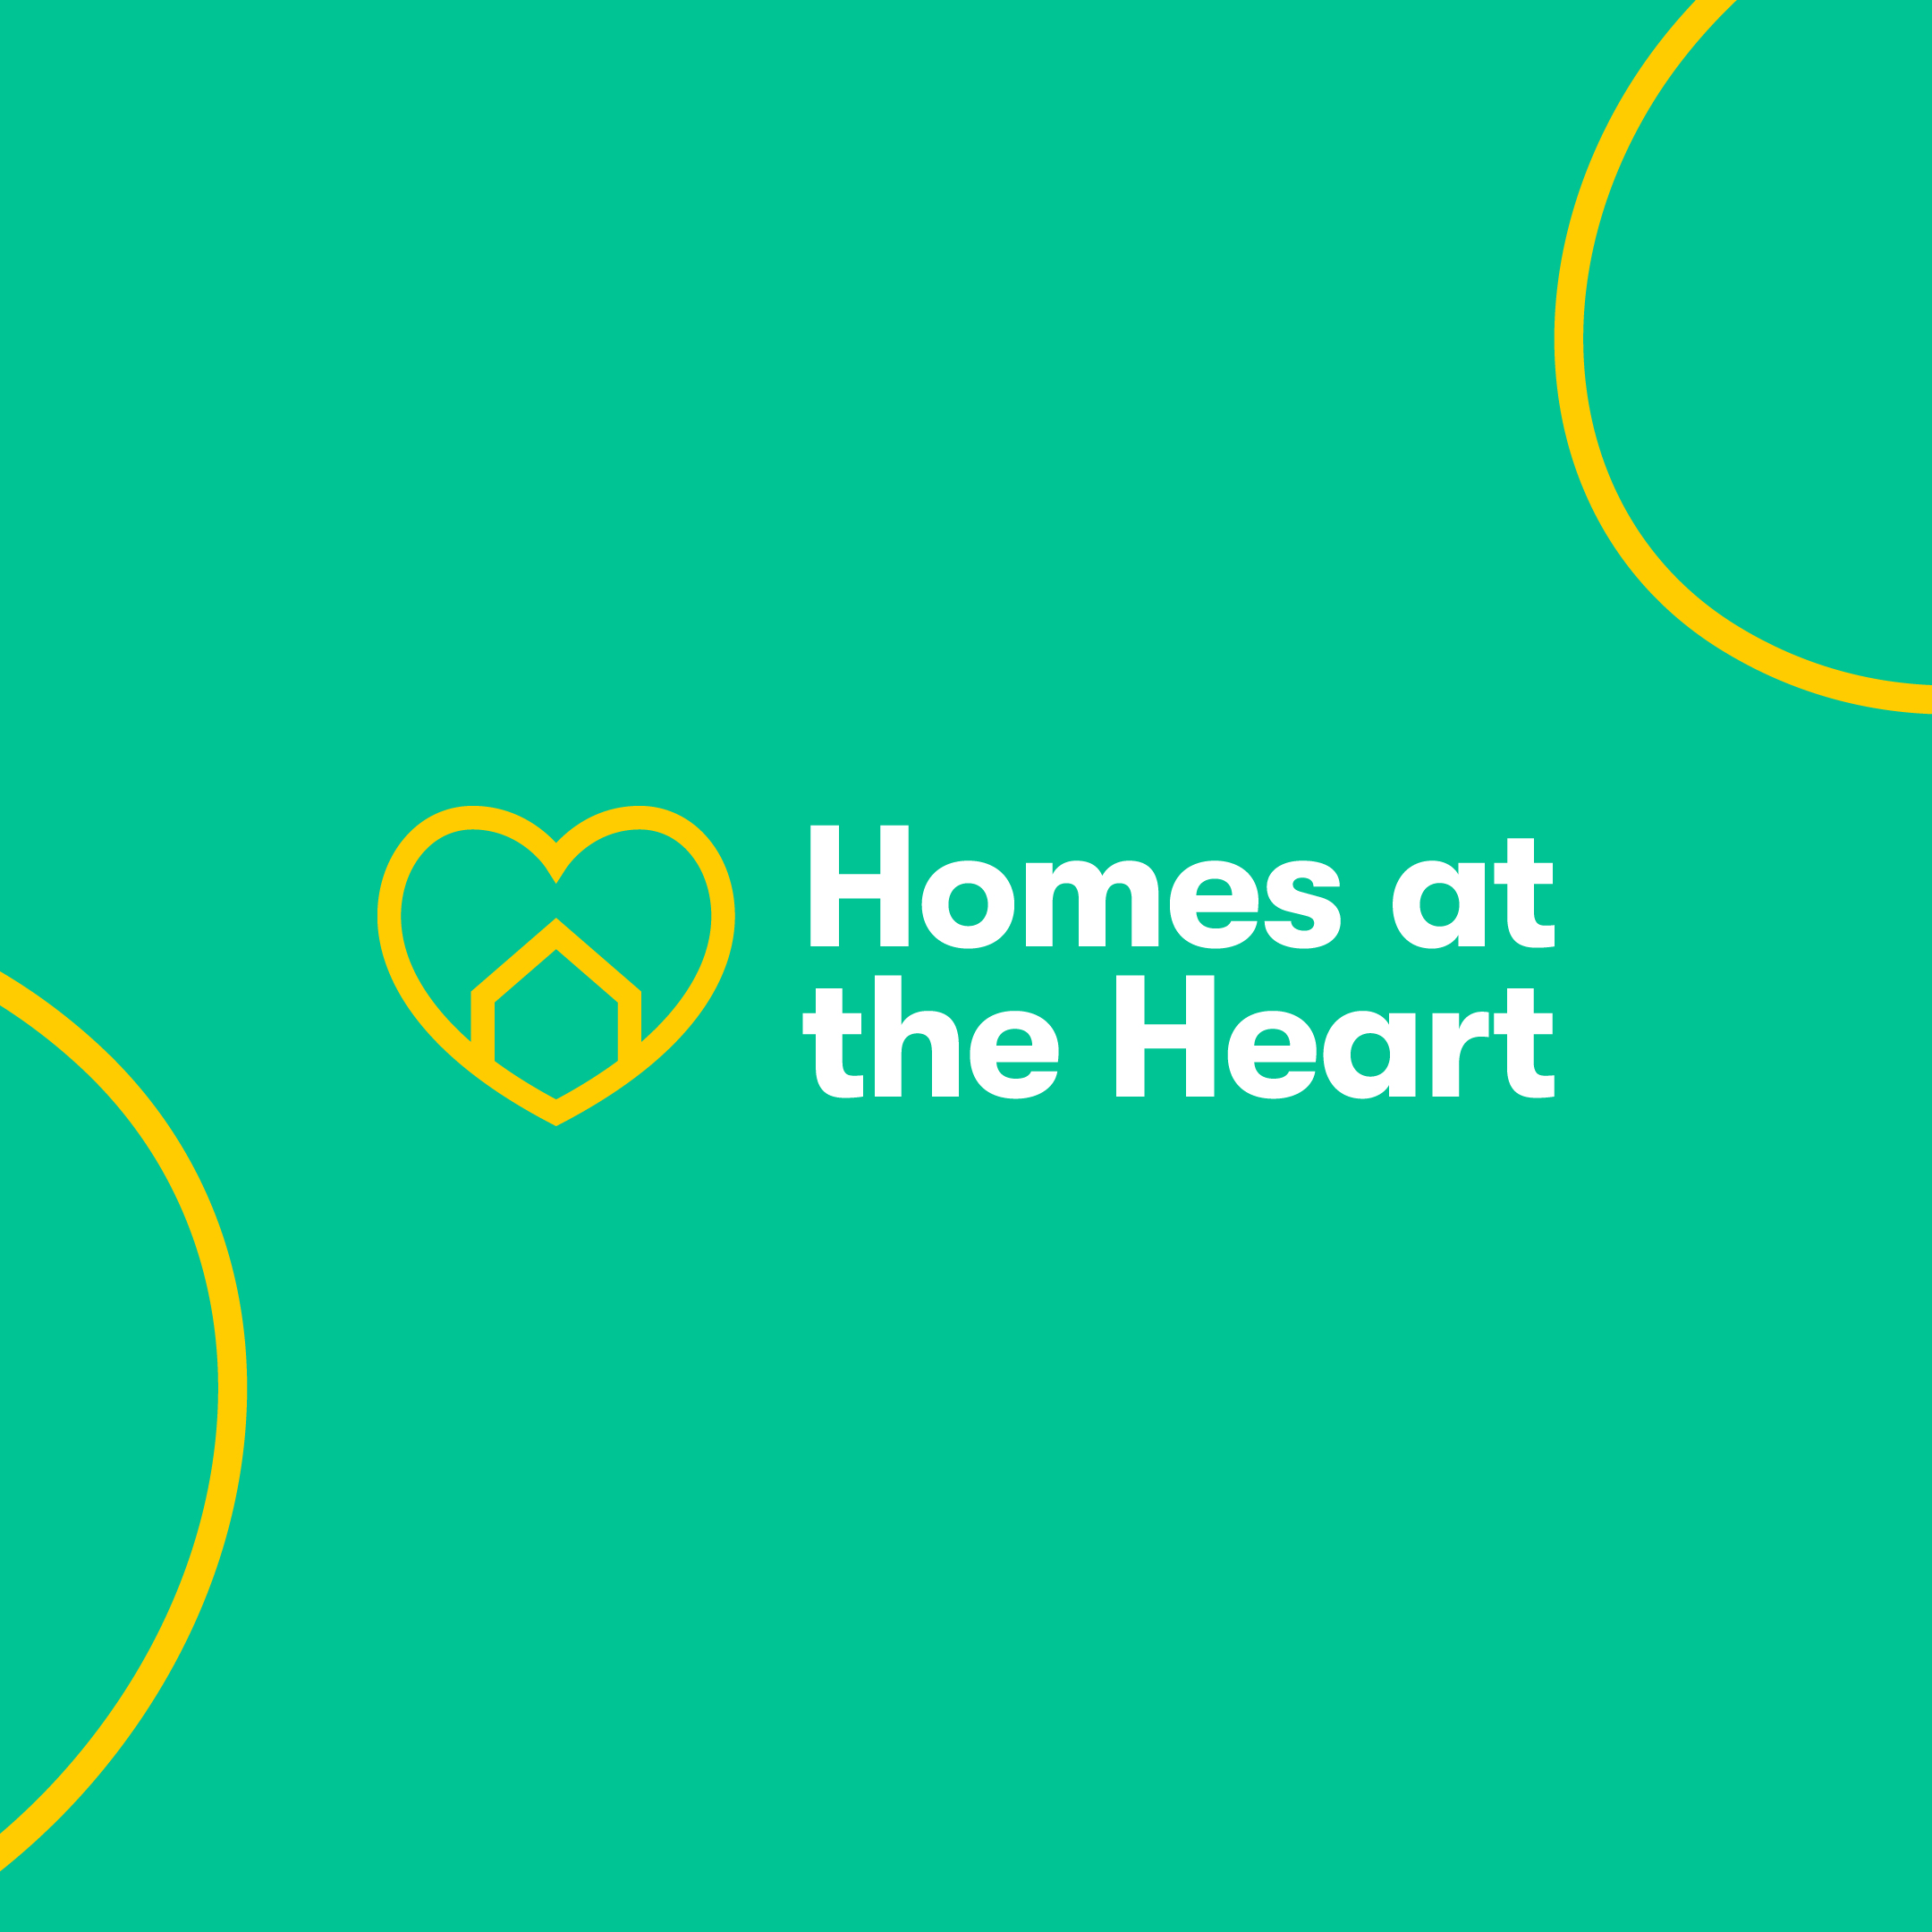 Supporting the Homes At The Heart campaign